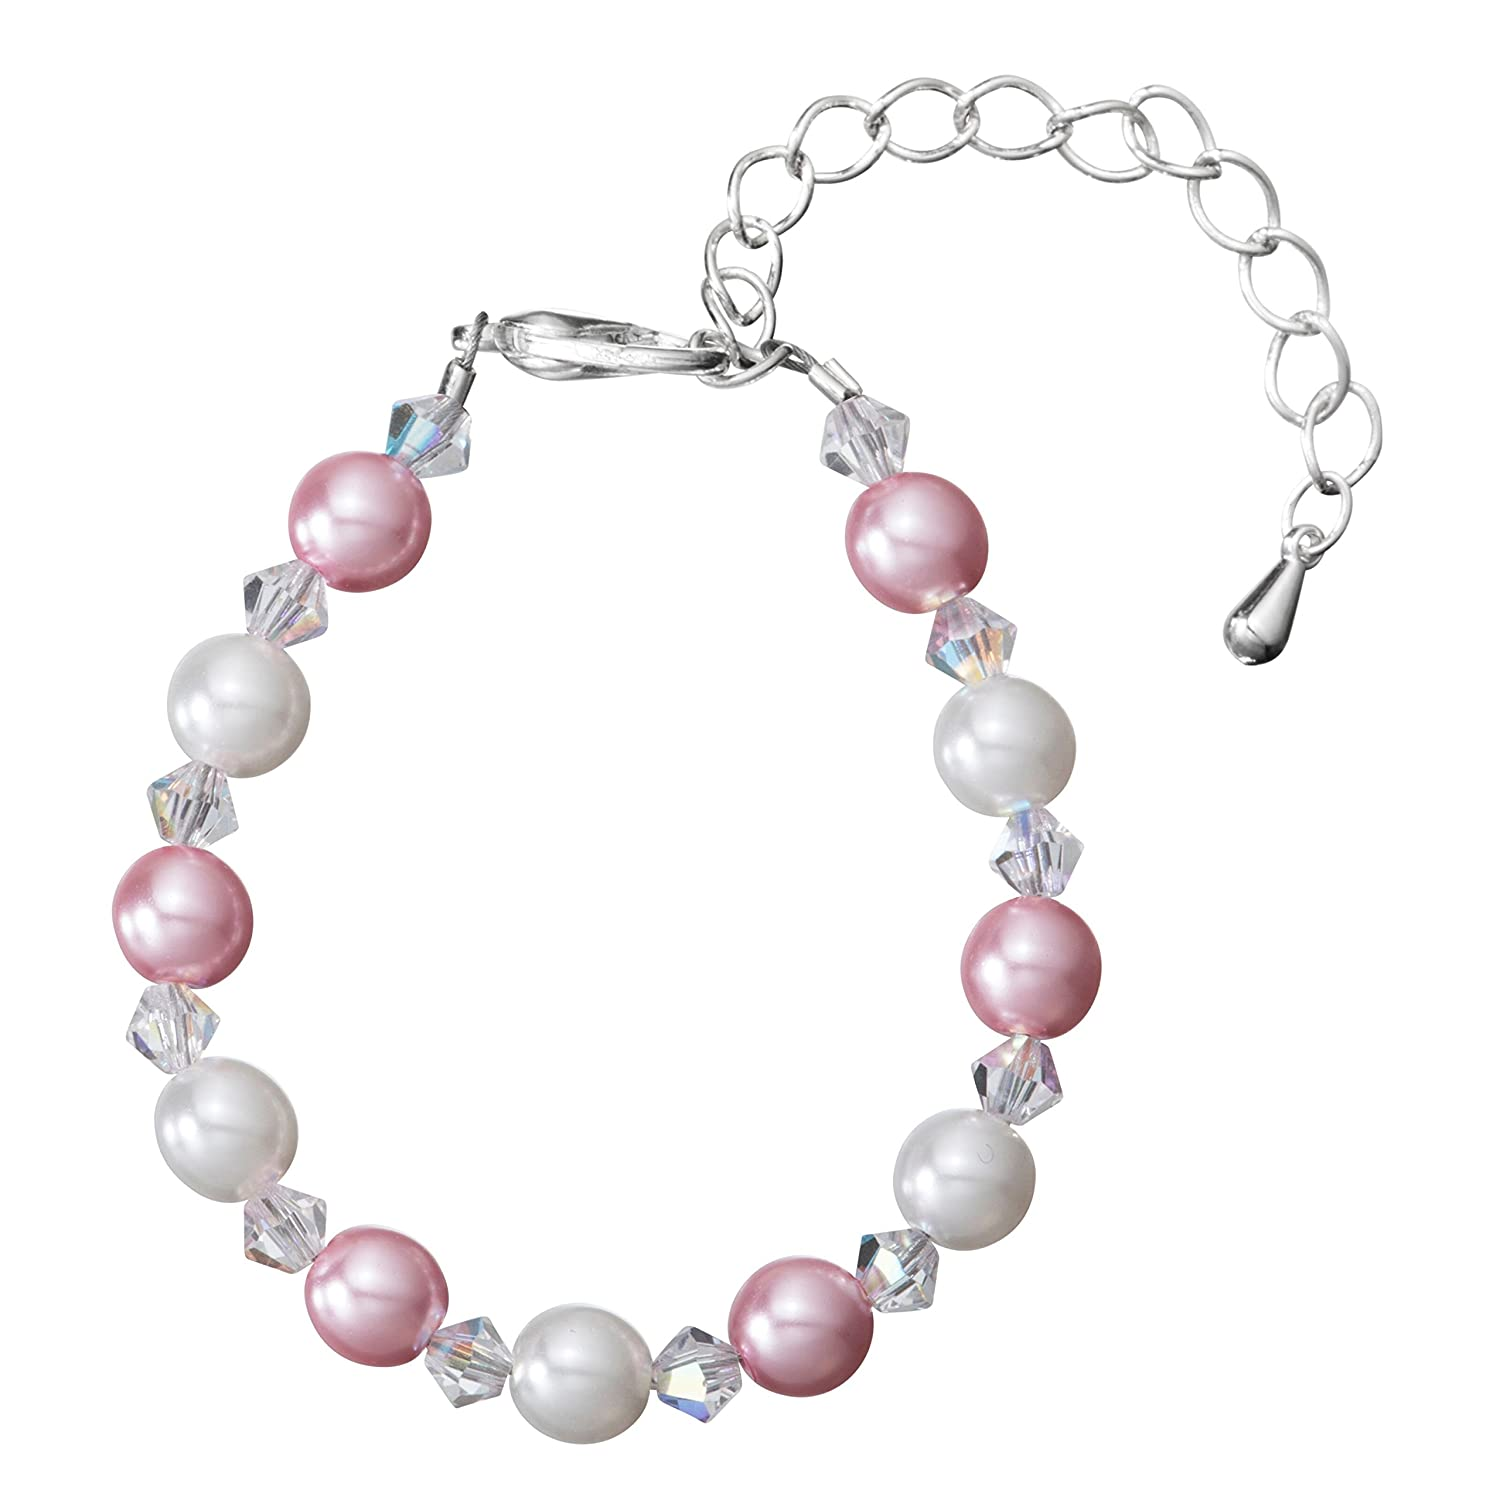 Delicate Silver Plated Pearl Bracelet for Girls - with White and Pink Glass Pearls and Crystals - Perfect for Birthday Gifts, Keepsake Gifts